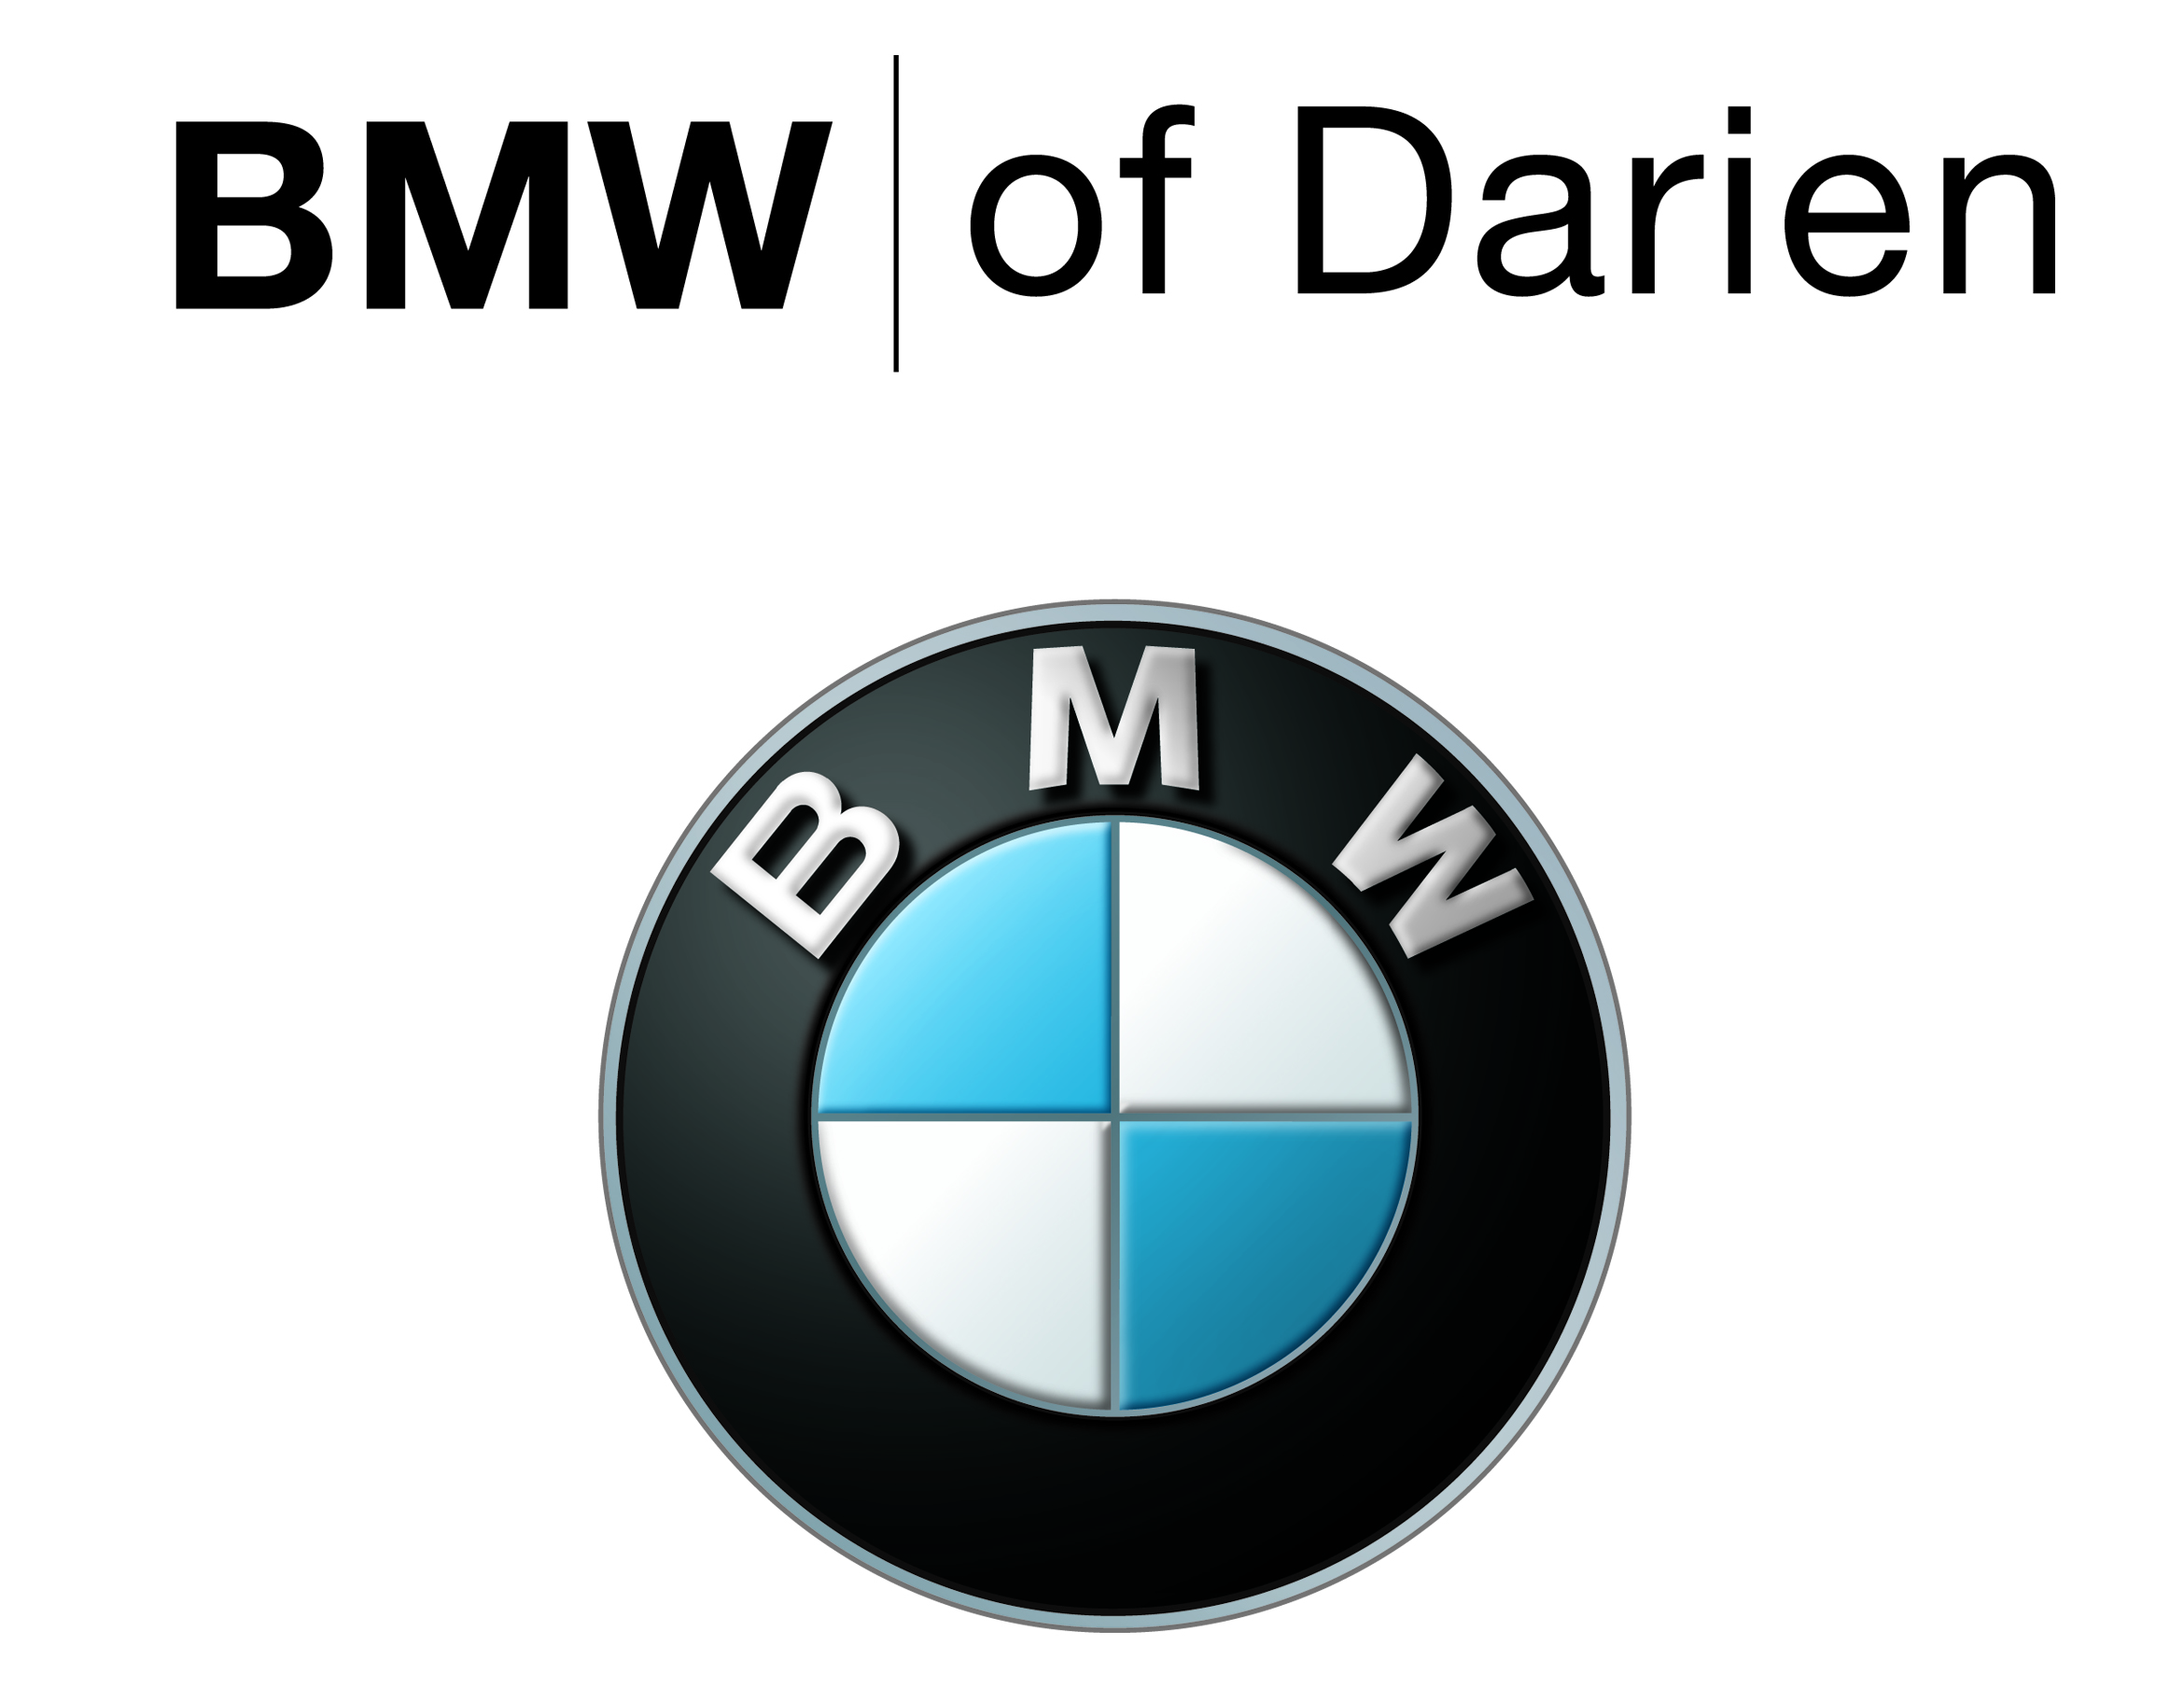 BMW of Darien.jpg